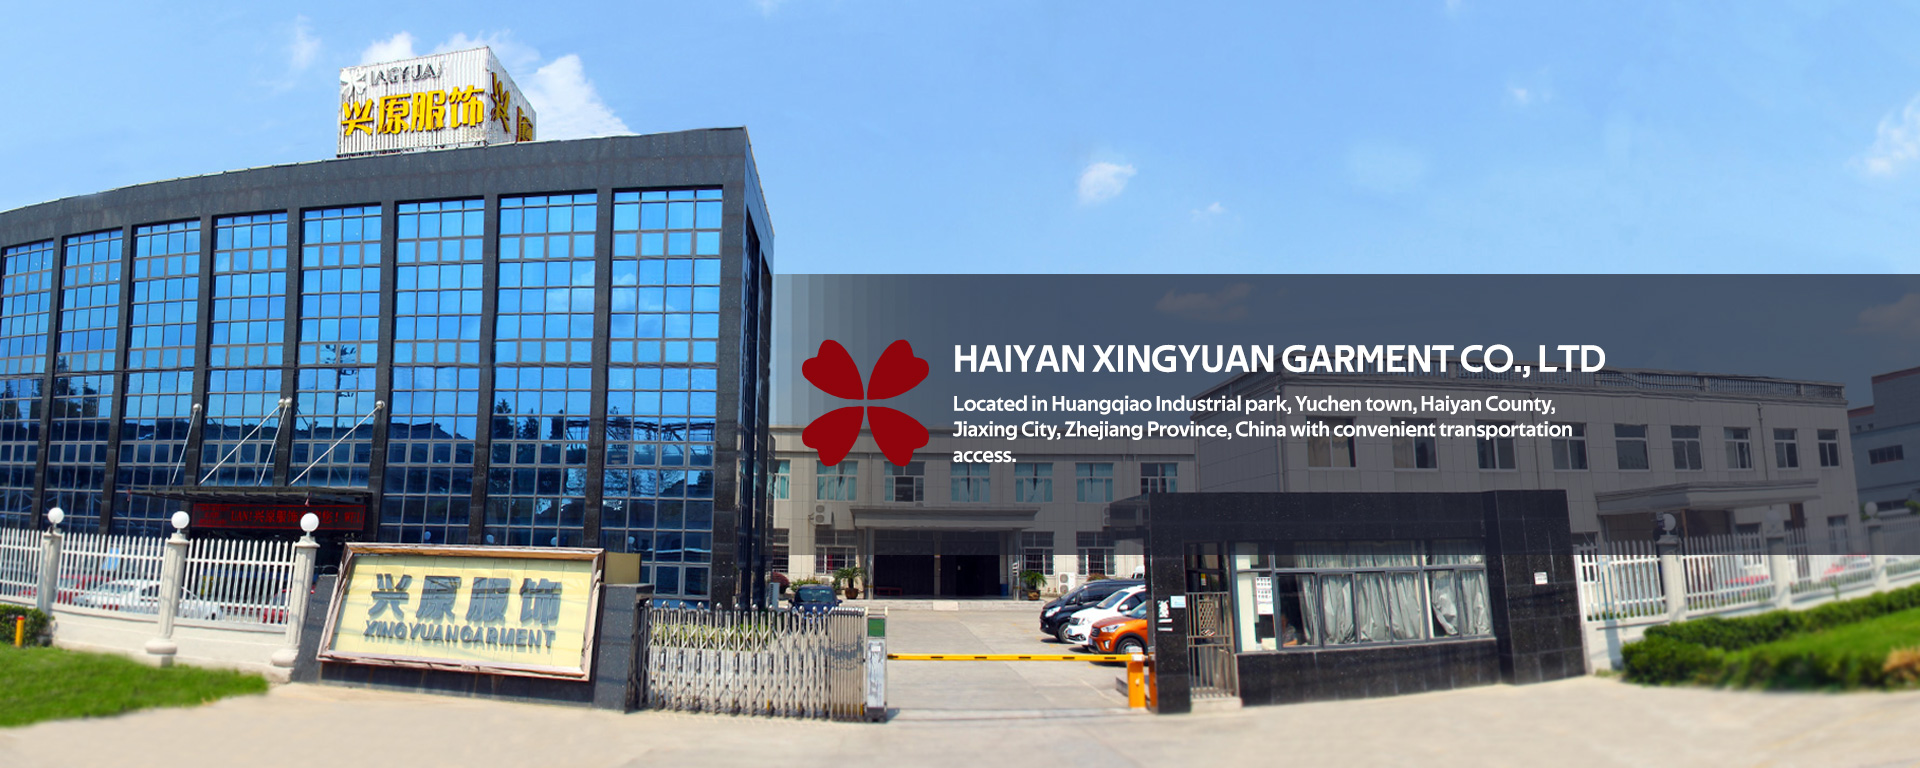 HAIYAN XINGYUAN GARMENT CO.,LTD